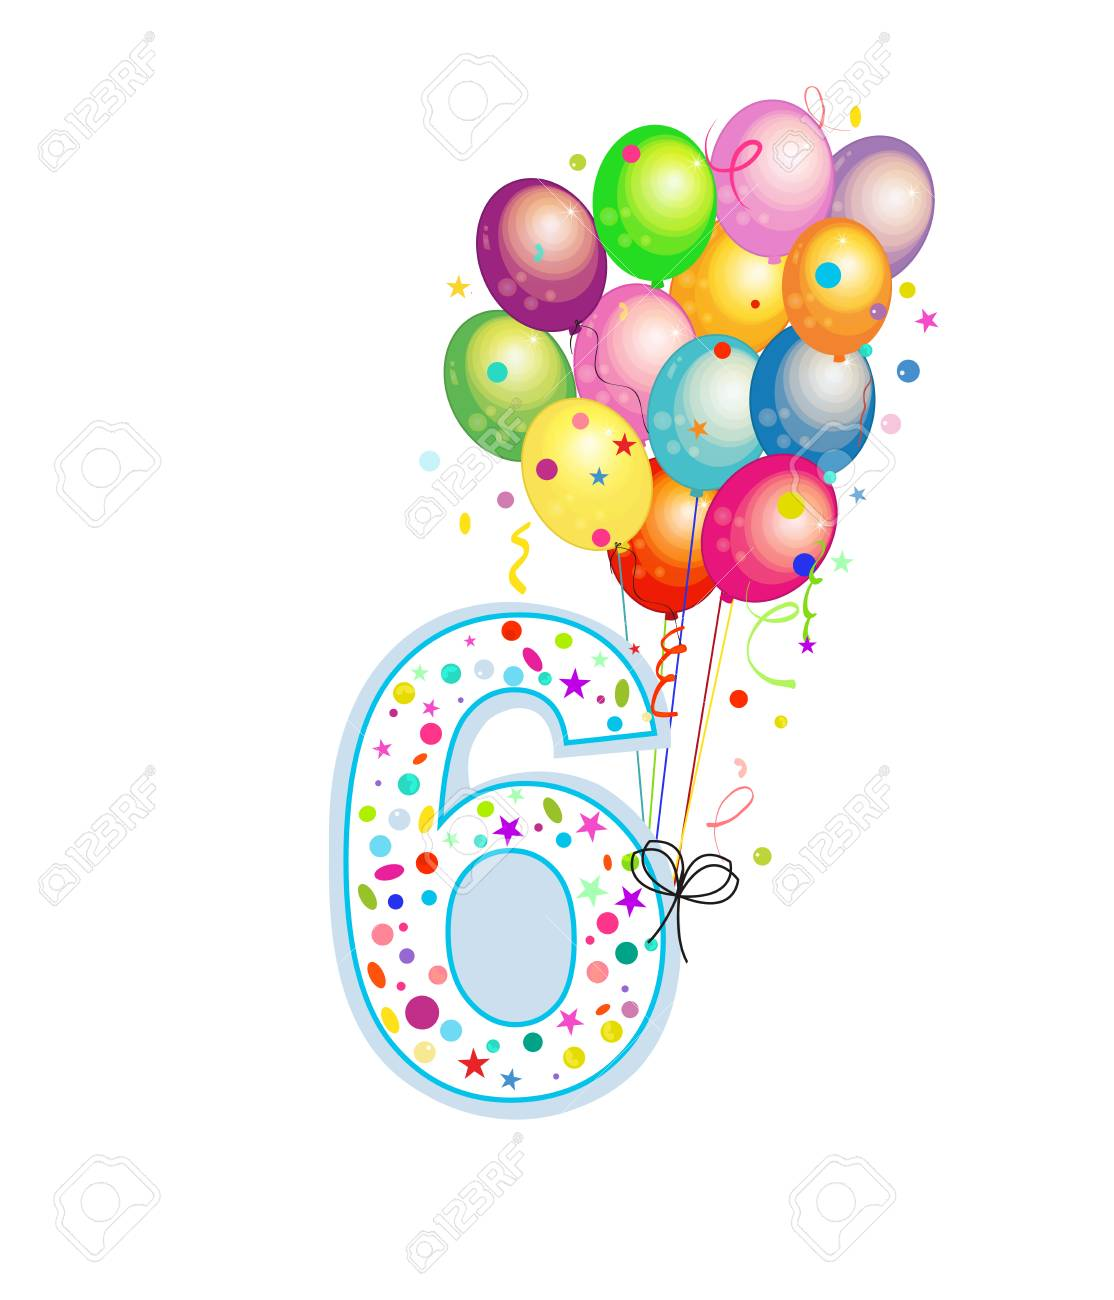 Happy Sixth Birthday Candle Six Numbered Balloon Colorful Balloons Greeting Card Background Stock